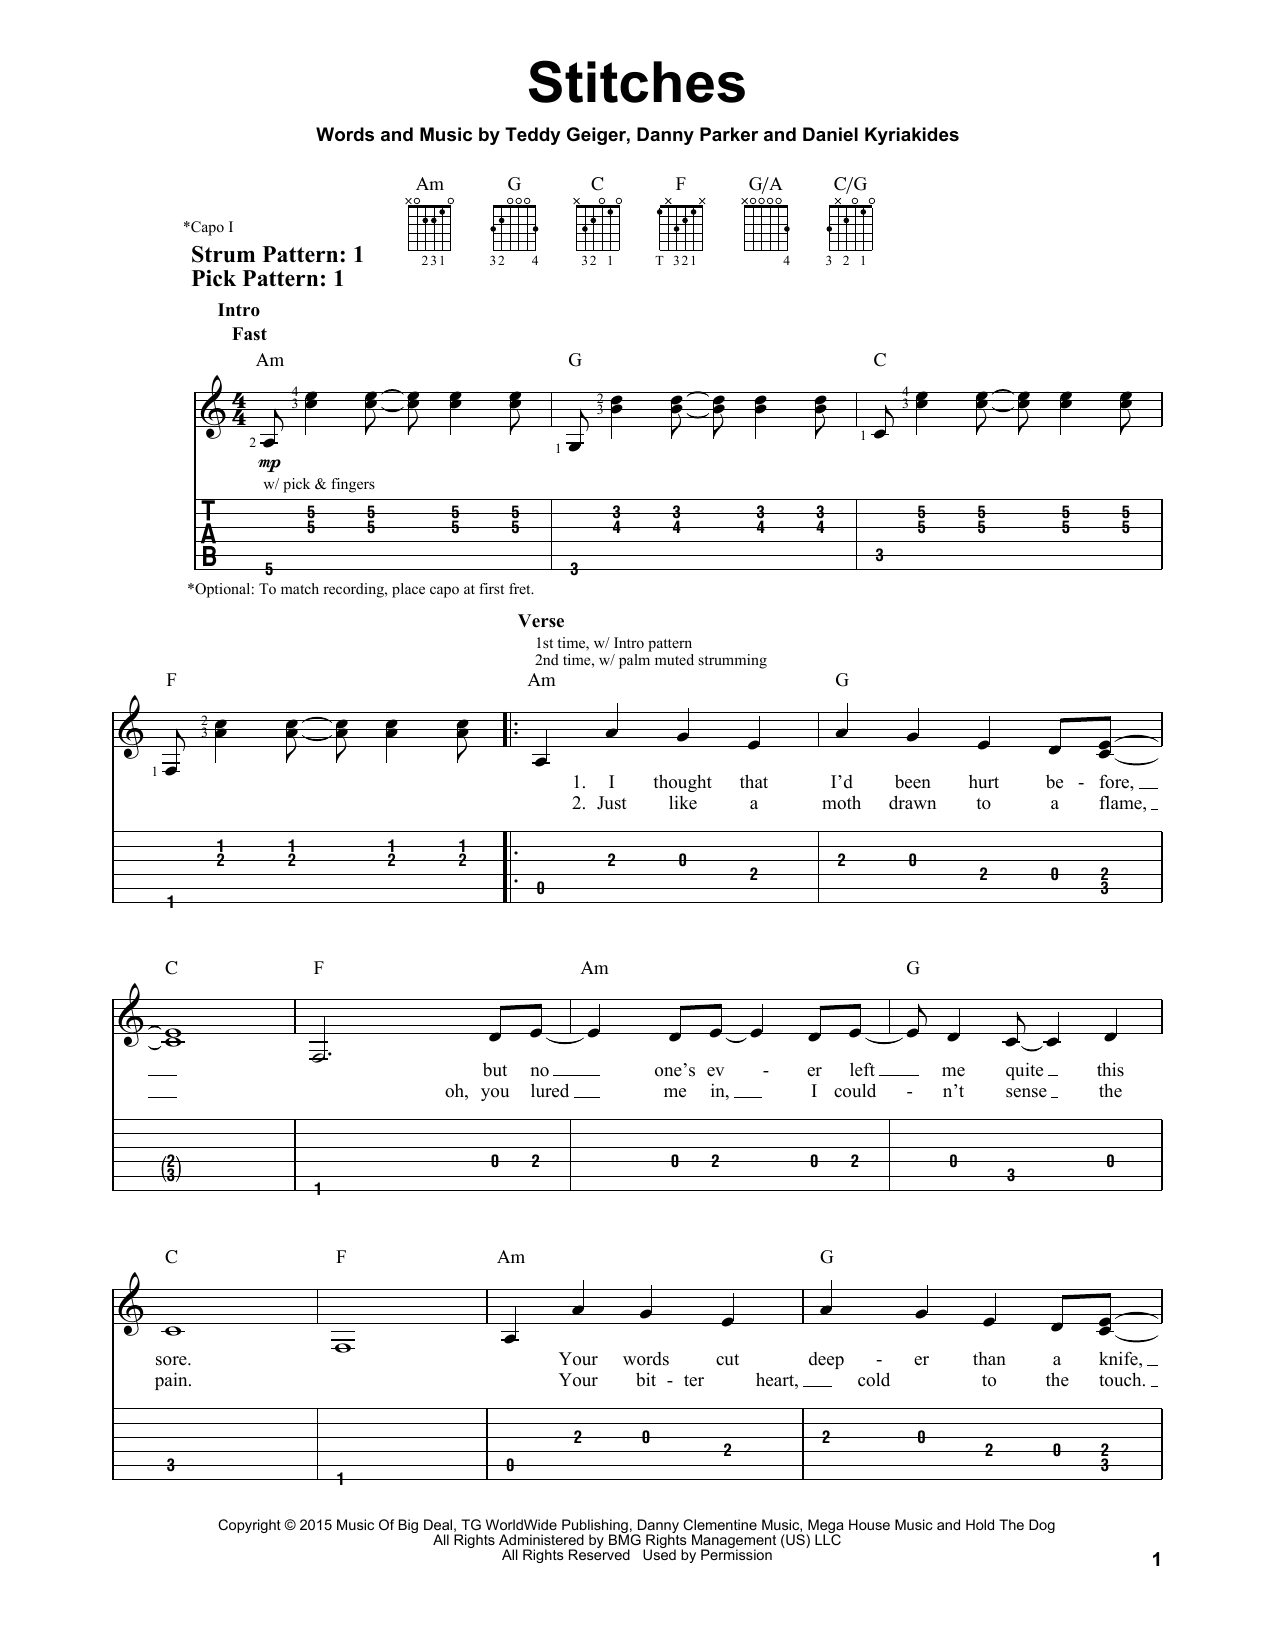 Stitches sheet music by Shawn Mendes (Easy Guitar Tab u2013 164004)